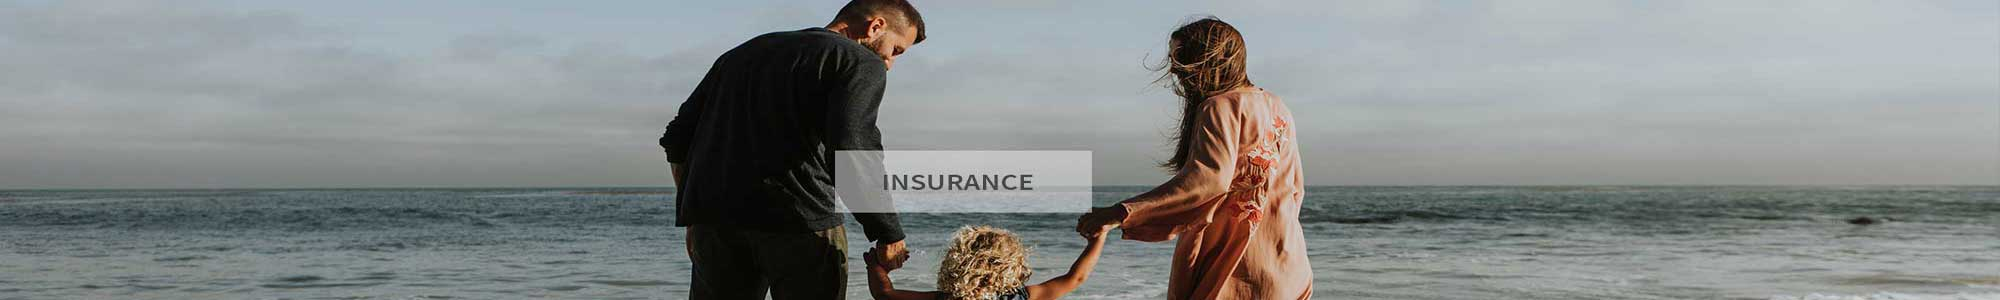 Lytle Associates Personal Insurance, Business Insurance, Life Insurance